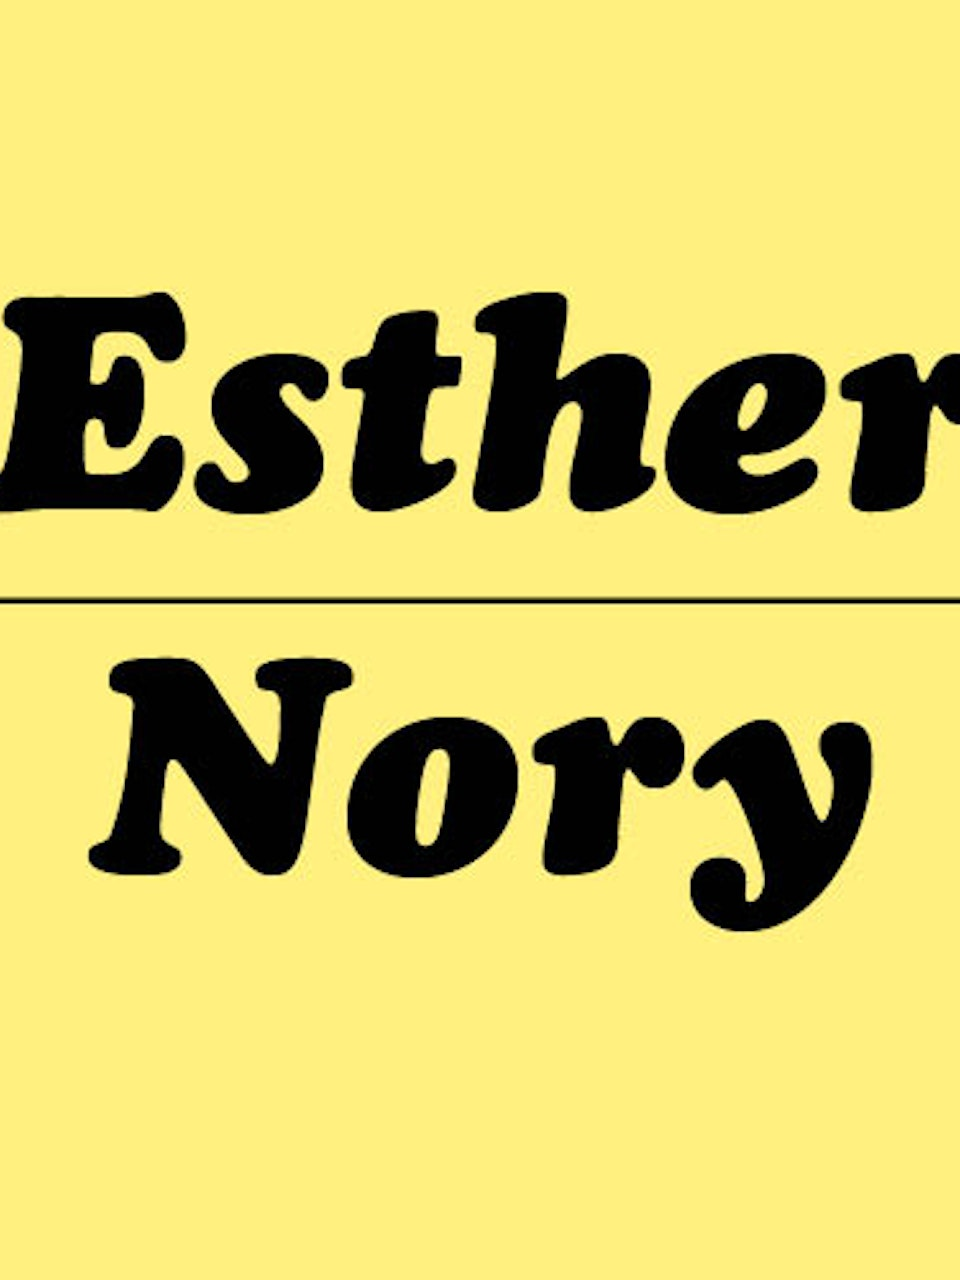 Esther Nory Shop